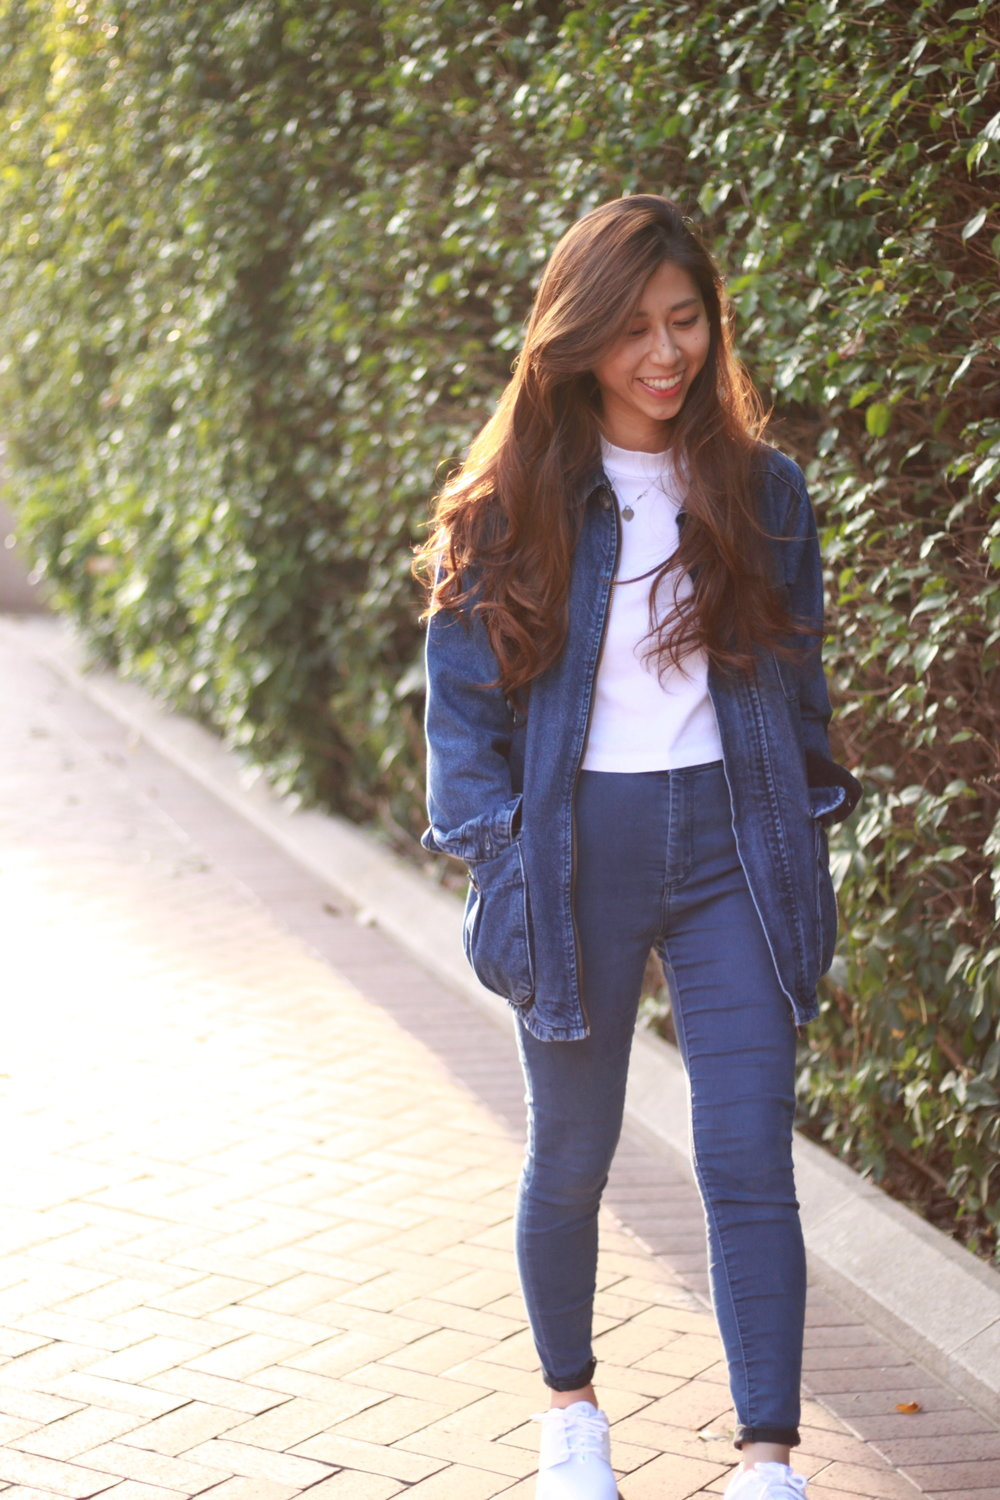 Topshop denim oversized jacket / White tee /  Topshop PETITE Blue Joni Jeans  / Nike white roshe /  DearPostman Full/half earrings